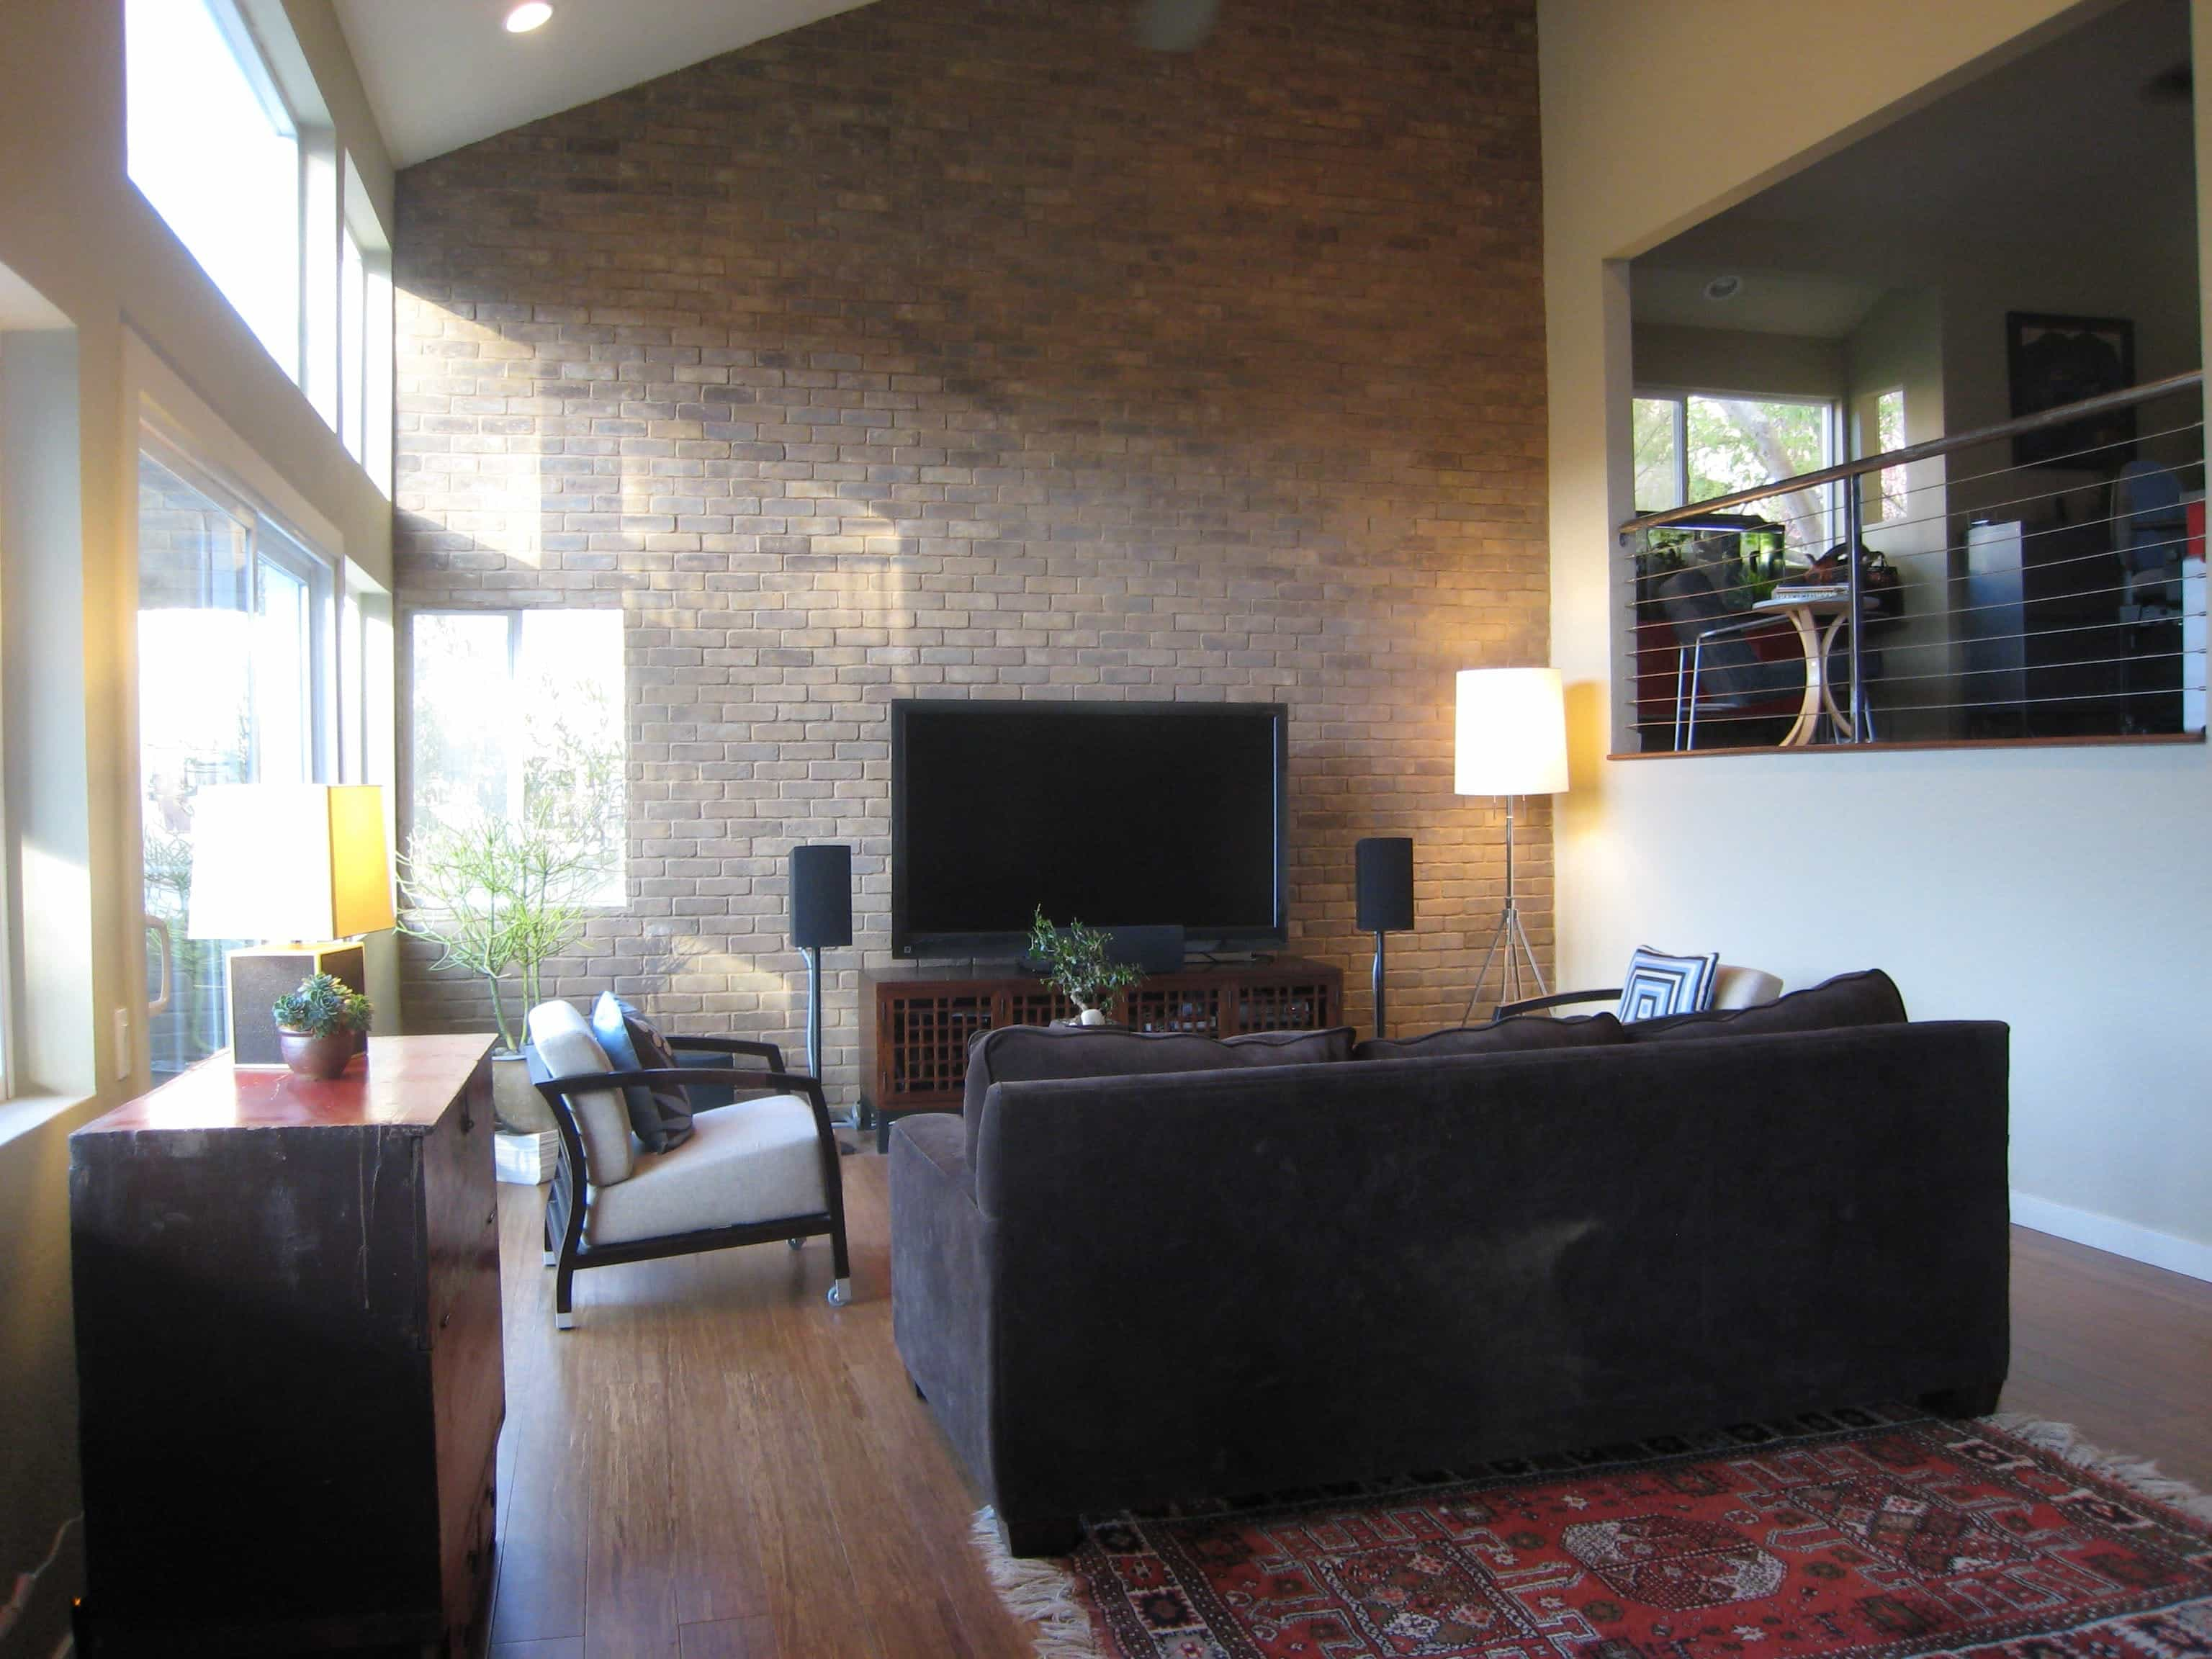 Minimalist Modern Living Room With Exposed Brick Wall (Image 18 of 30)